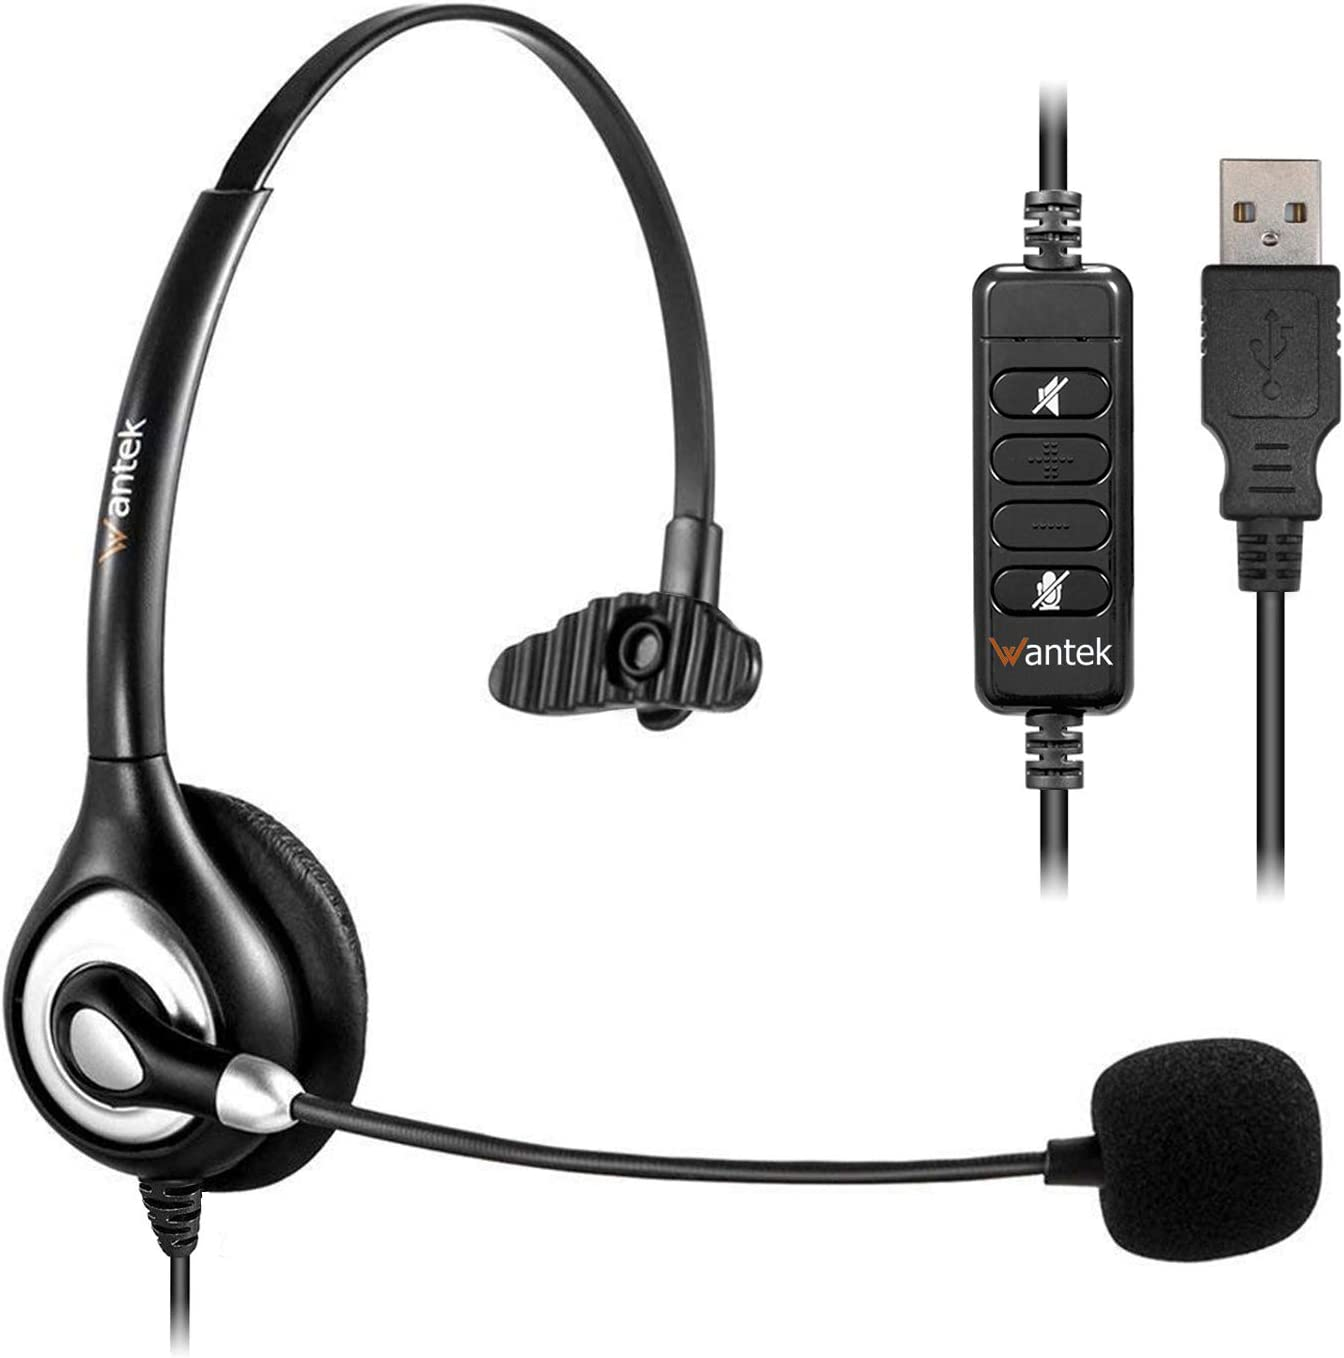 Corded USB Headsets Mono with Noise Cancelling Mic and in-line Controls, Wantek UC Business Headset for Skype, SoftPhone, Call Center, Crystal Clear Chat, Super Lightweight, Ultra Comfort (UC600)